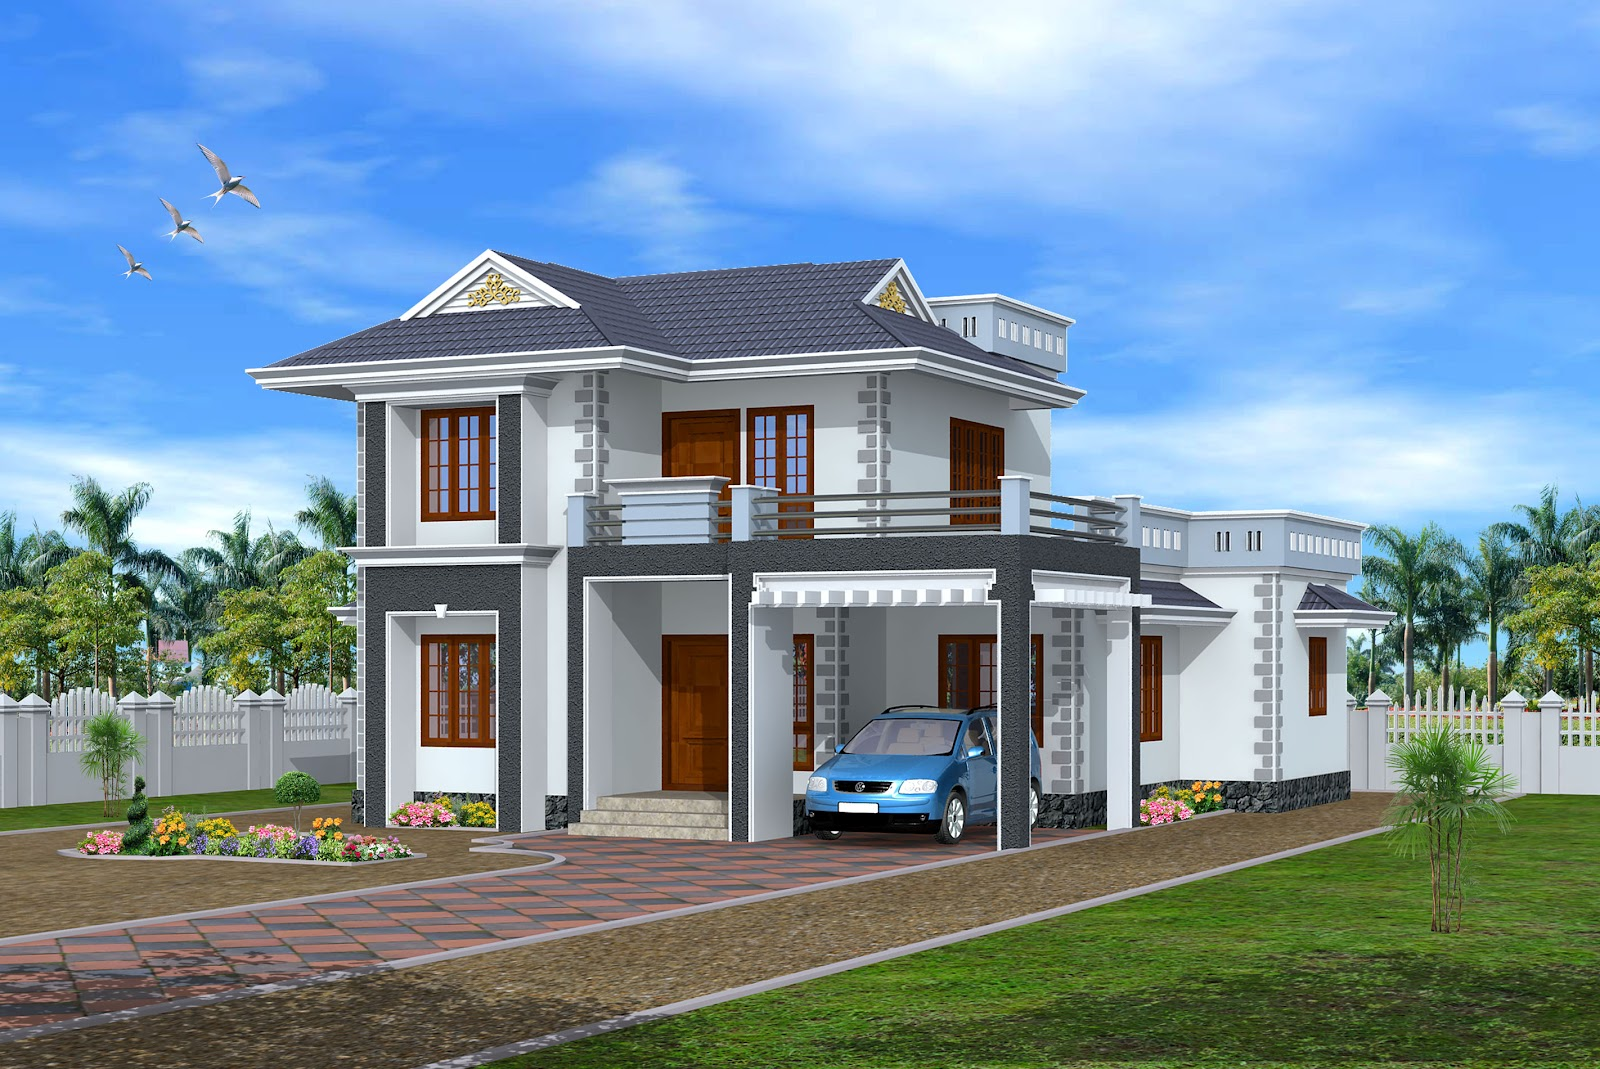 New home designs latest modern homes exterior designs views for Blue print homes